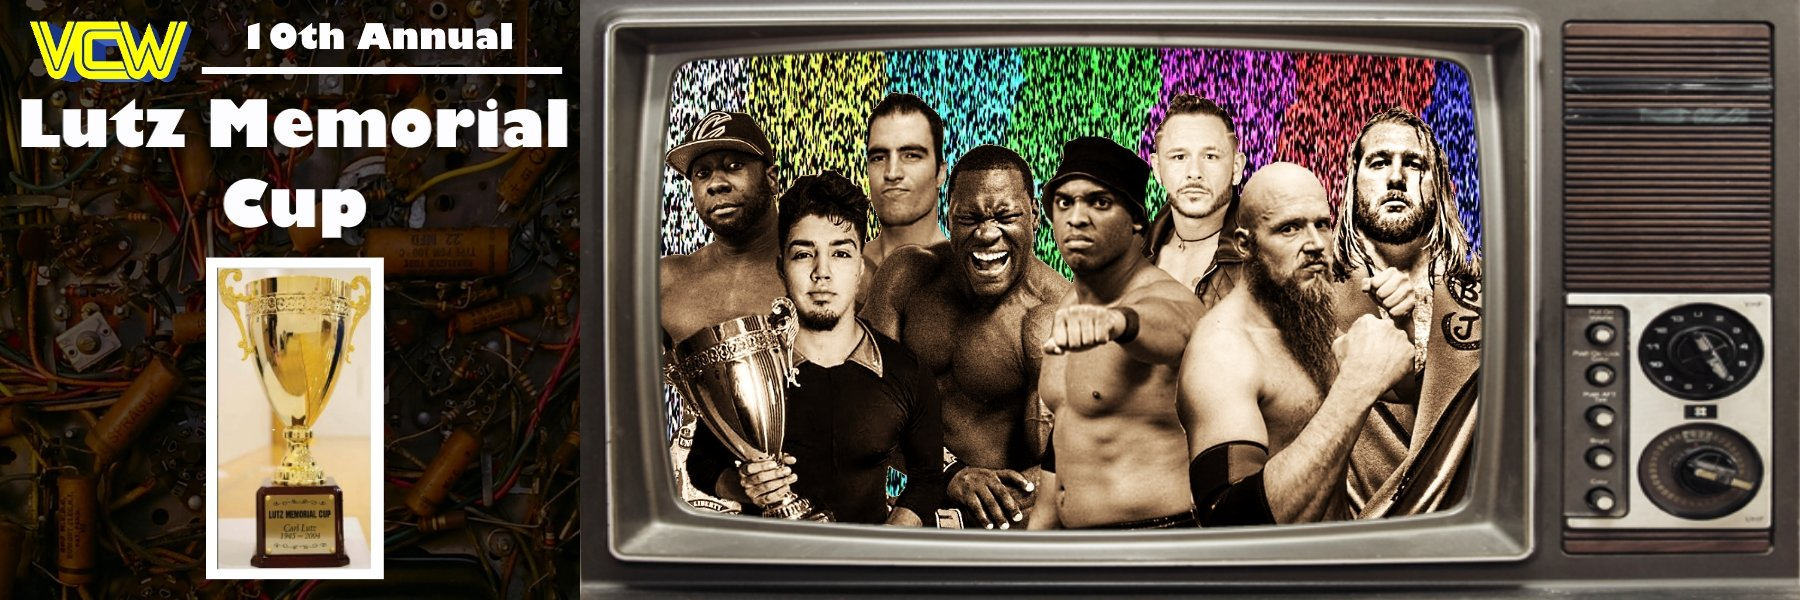 Now Available!  VCW's 10th Annual Lutz Memorial Cup!  Click Here to Watch!